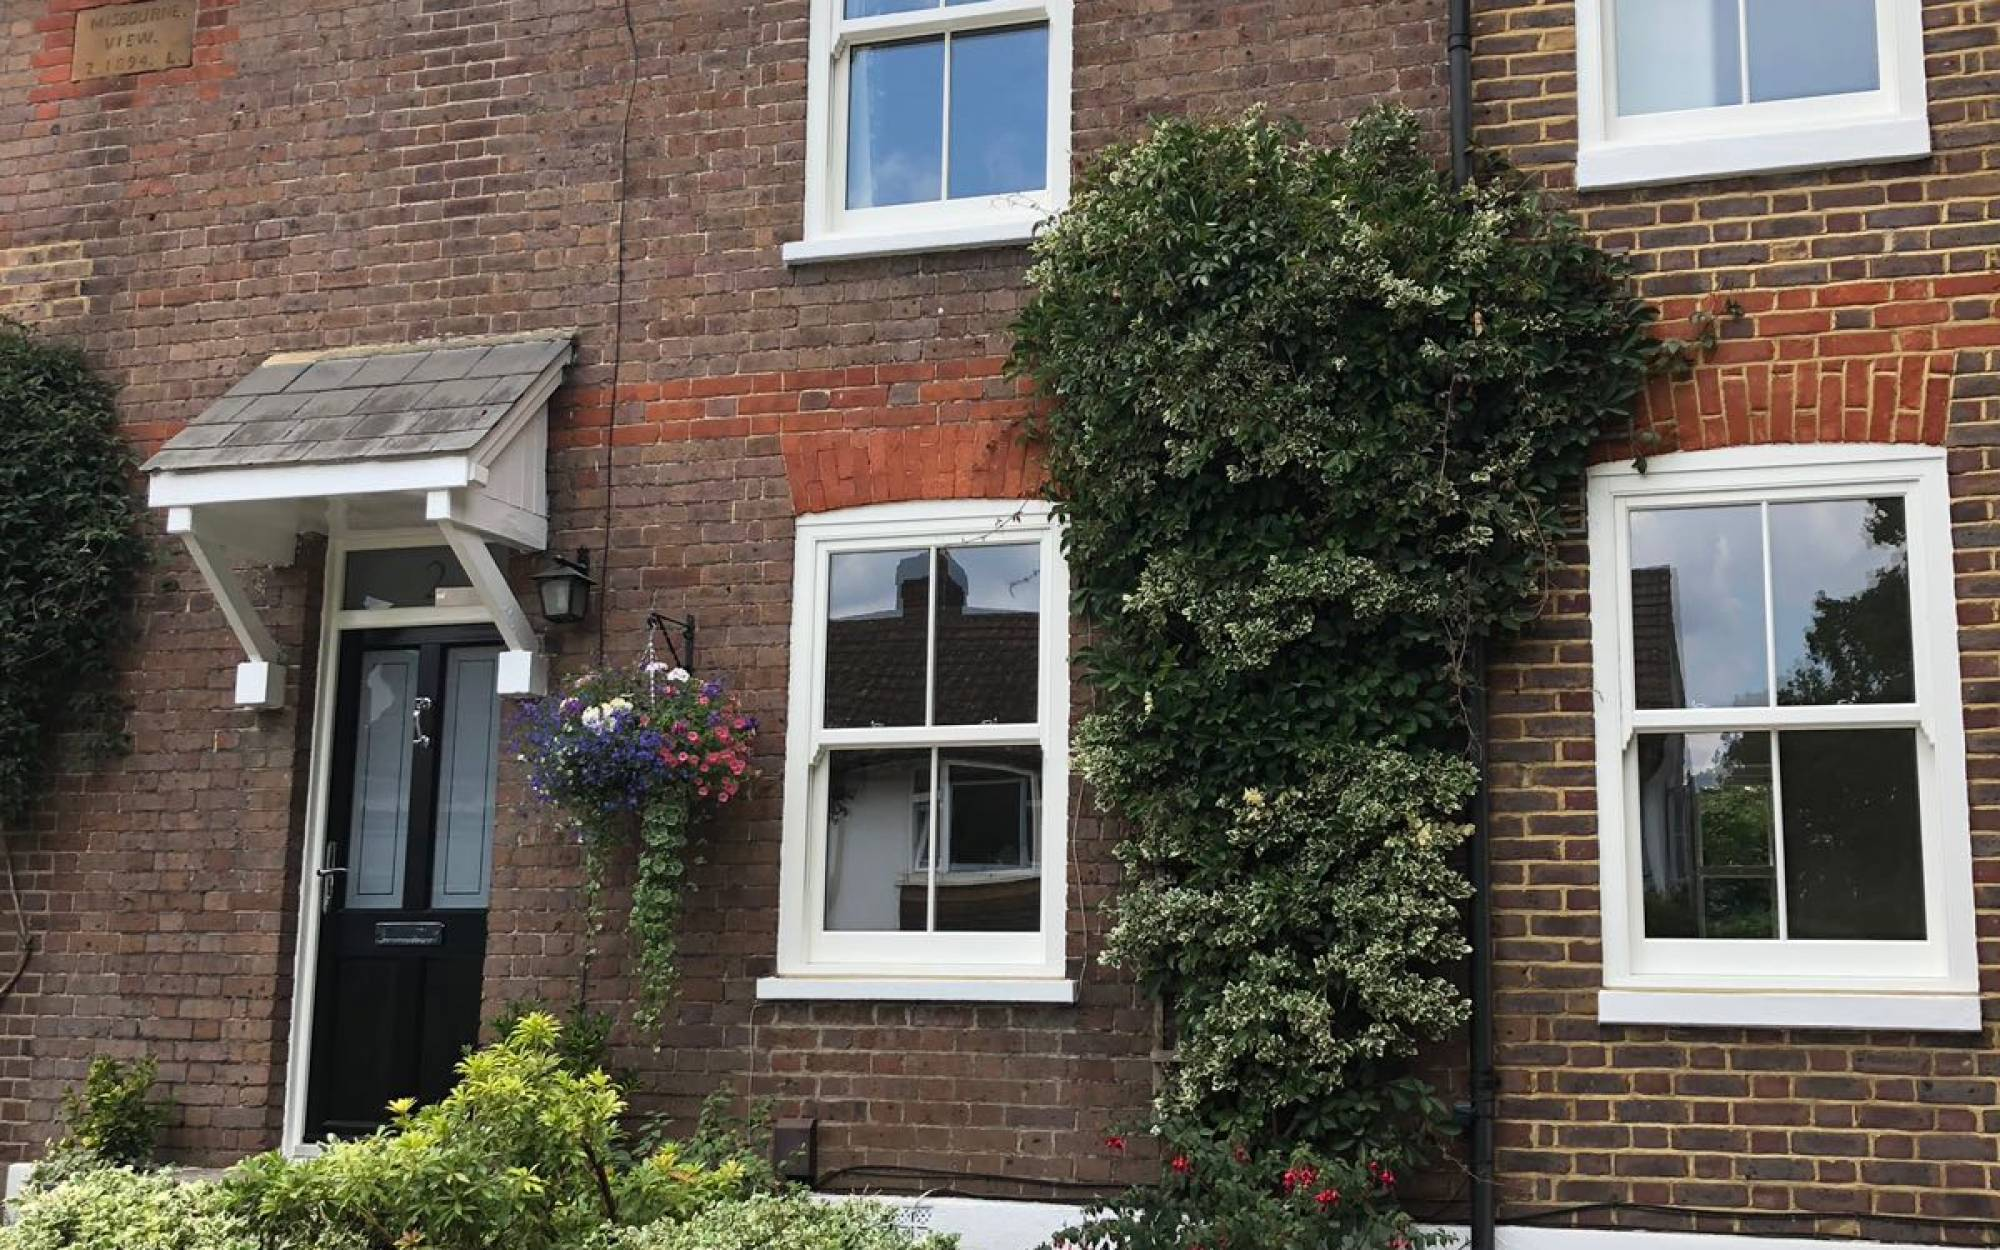 Timber alternative sash windows, Chalfont St Giles